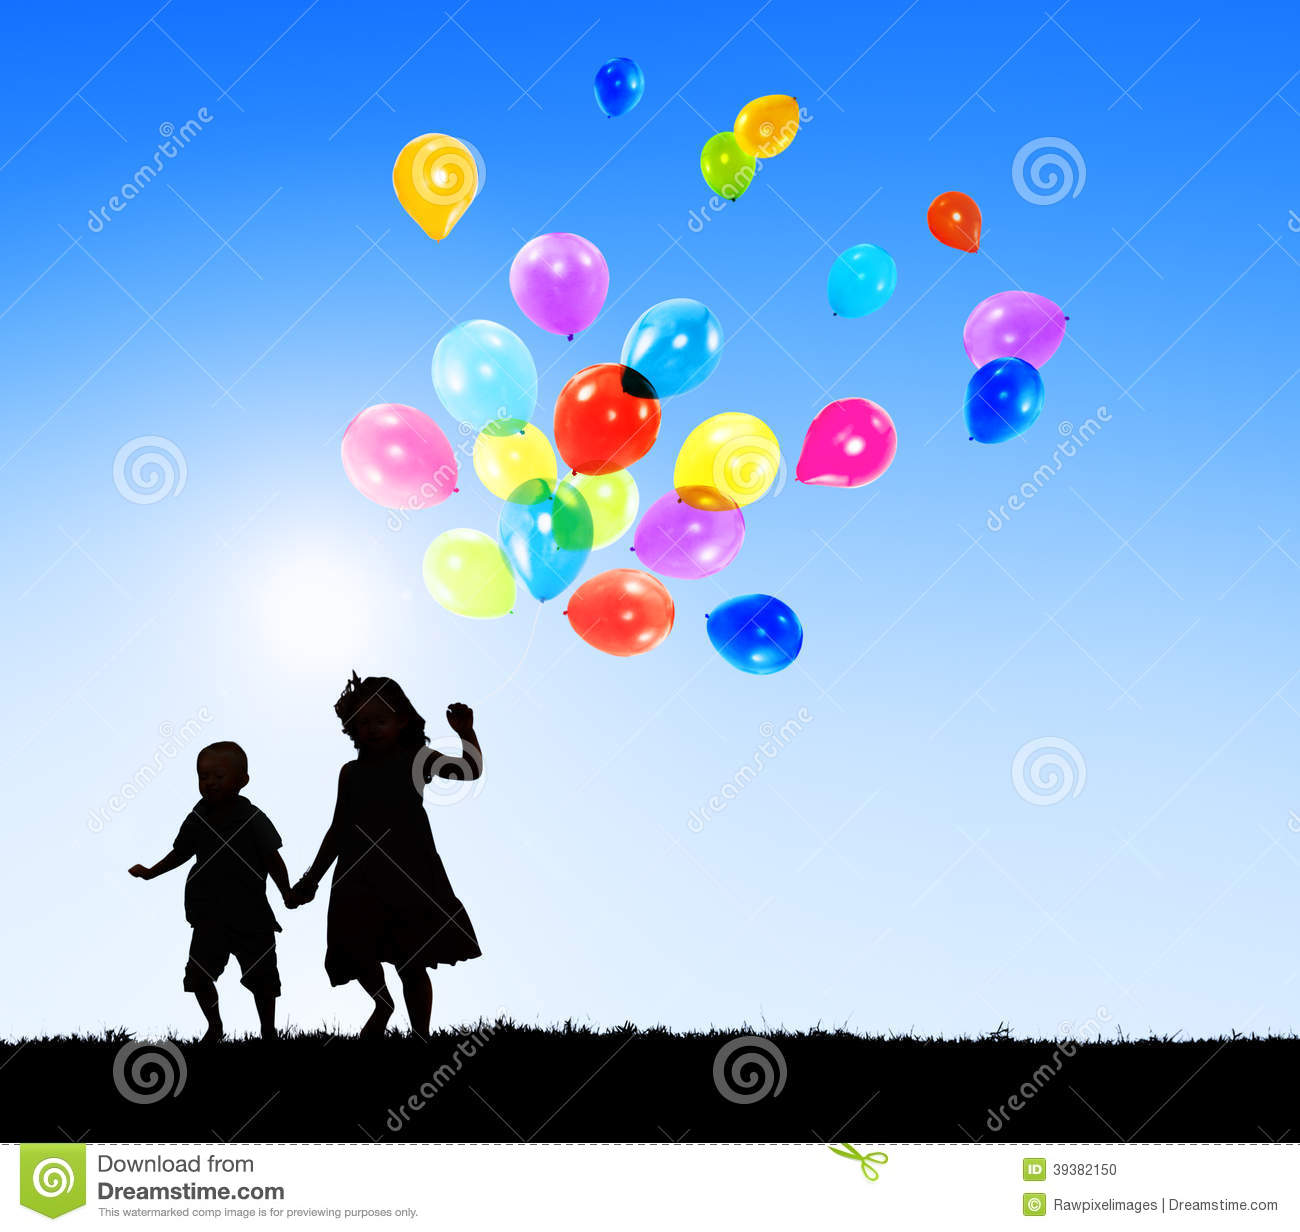 Two Children Outdoors Holding Balloons